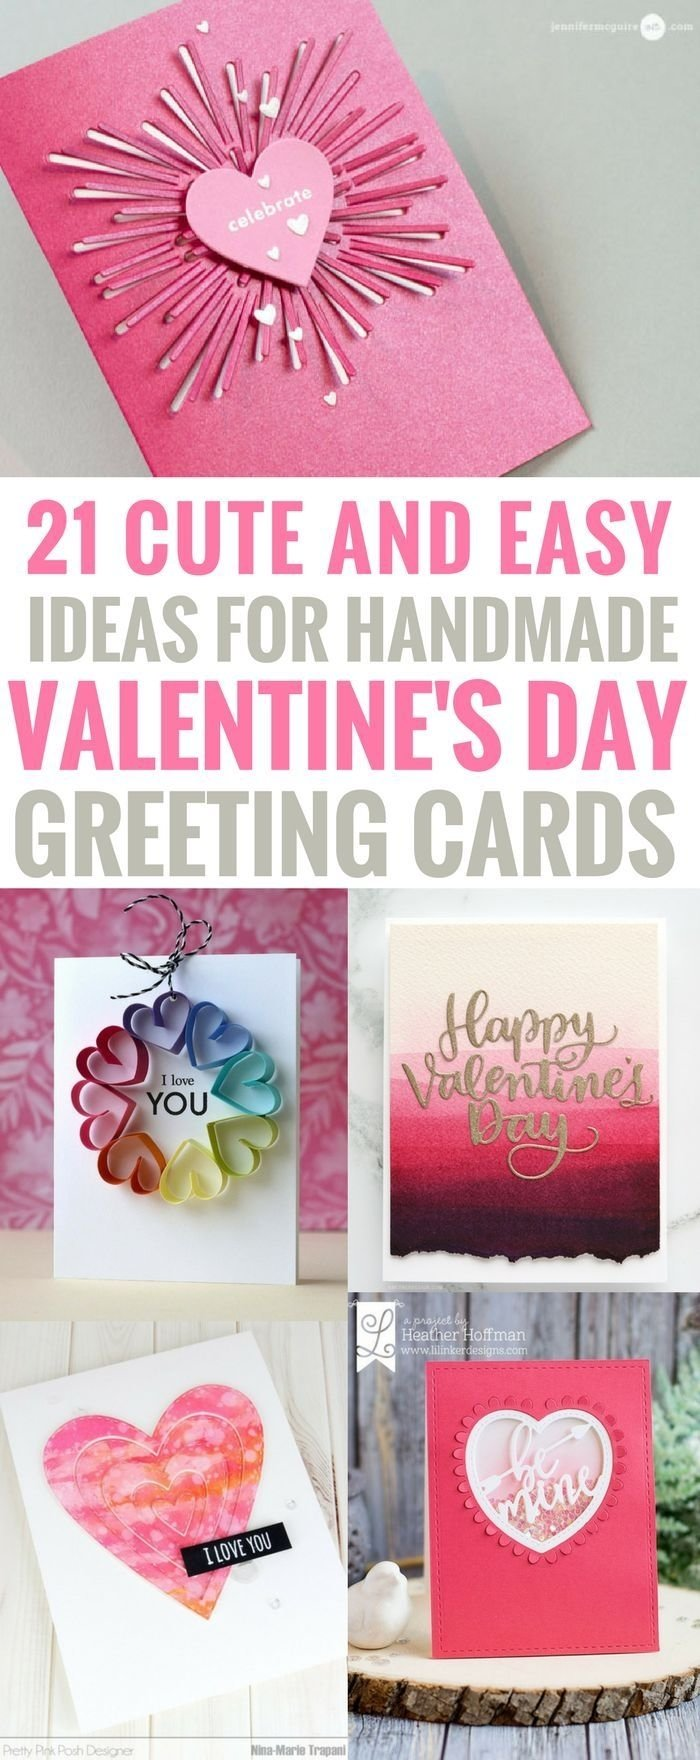 10 Trendy Cute Valentines Day Ideas For Husband 21 amazingly cute and easy ideas for handmade valentines day cards 2020